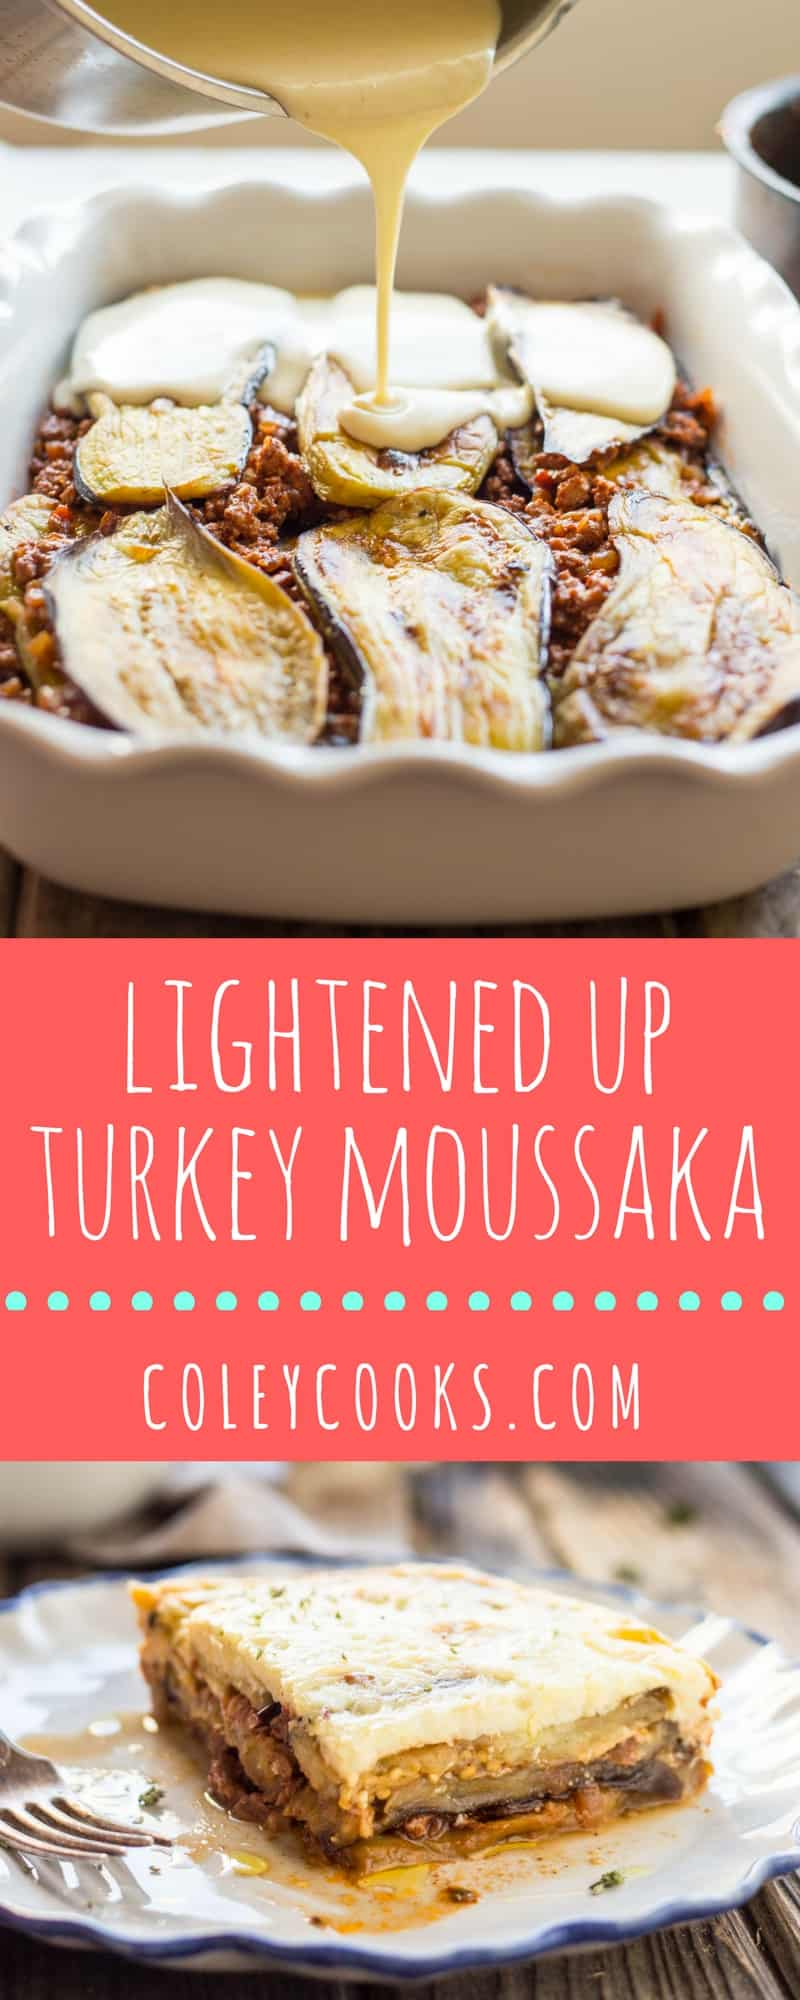 Turkey Moussaka | A lighter take on the Mediterranean classic | ColeyCooks.com